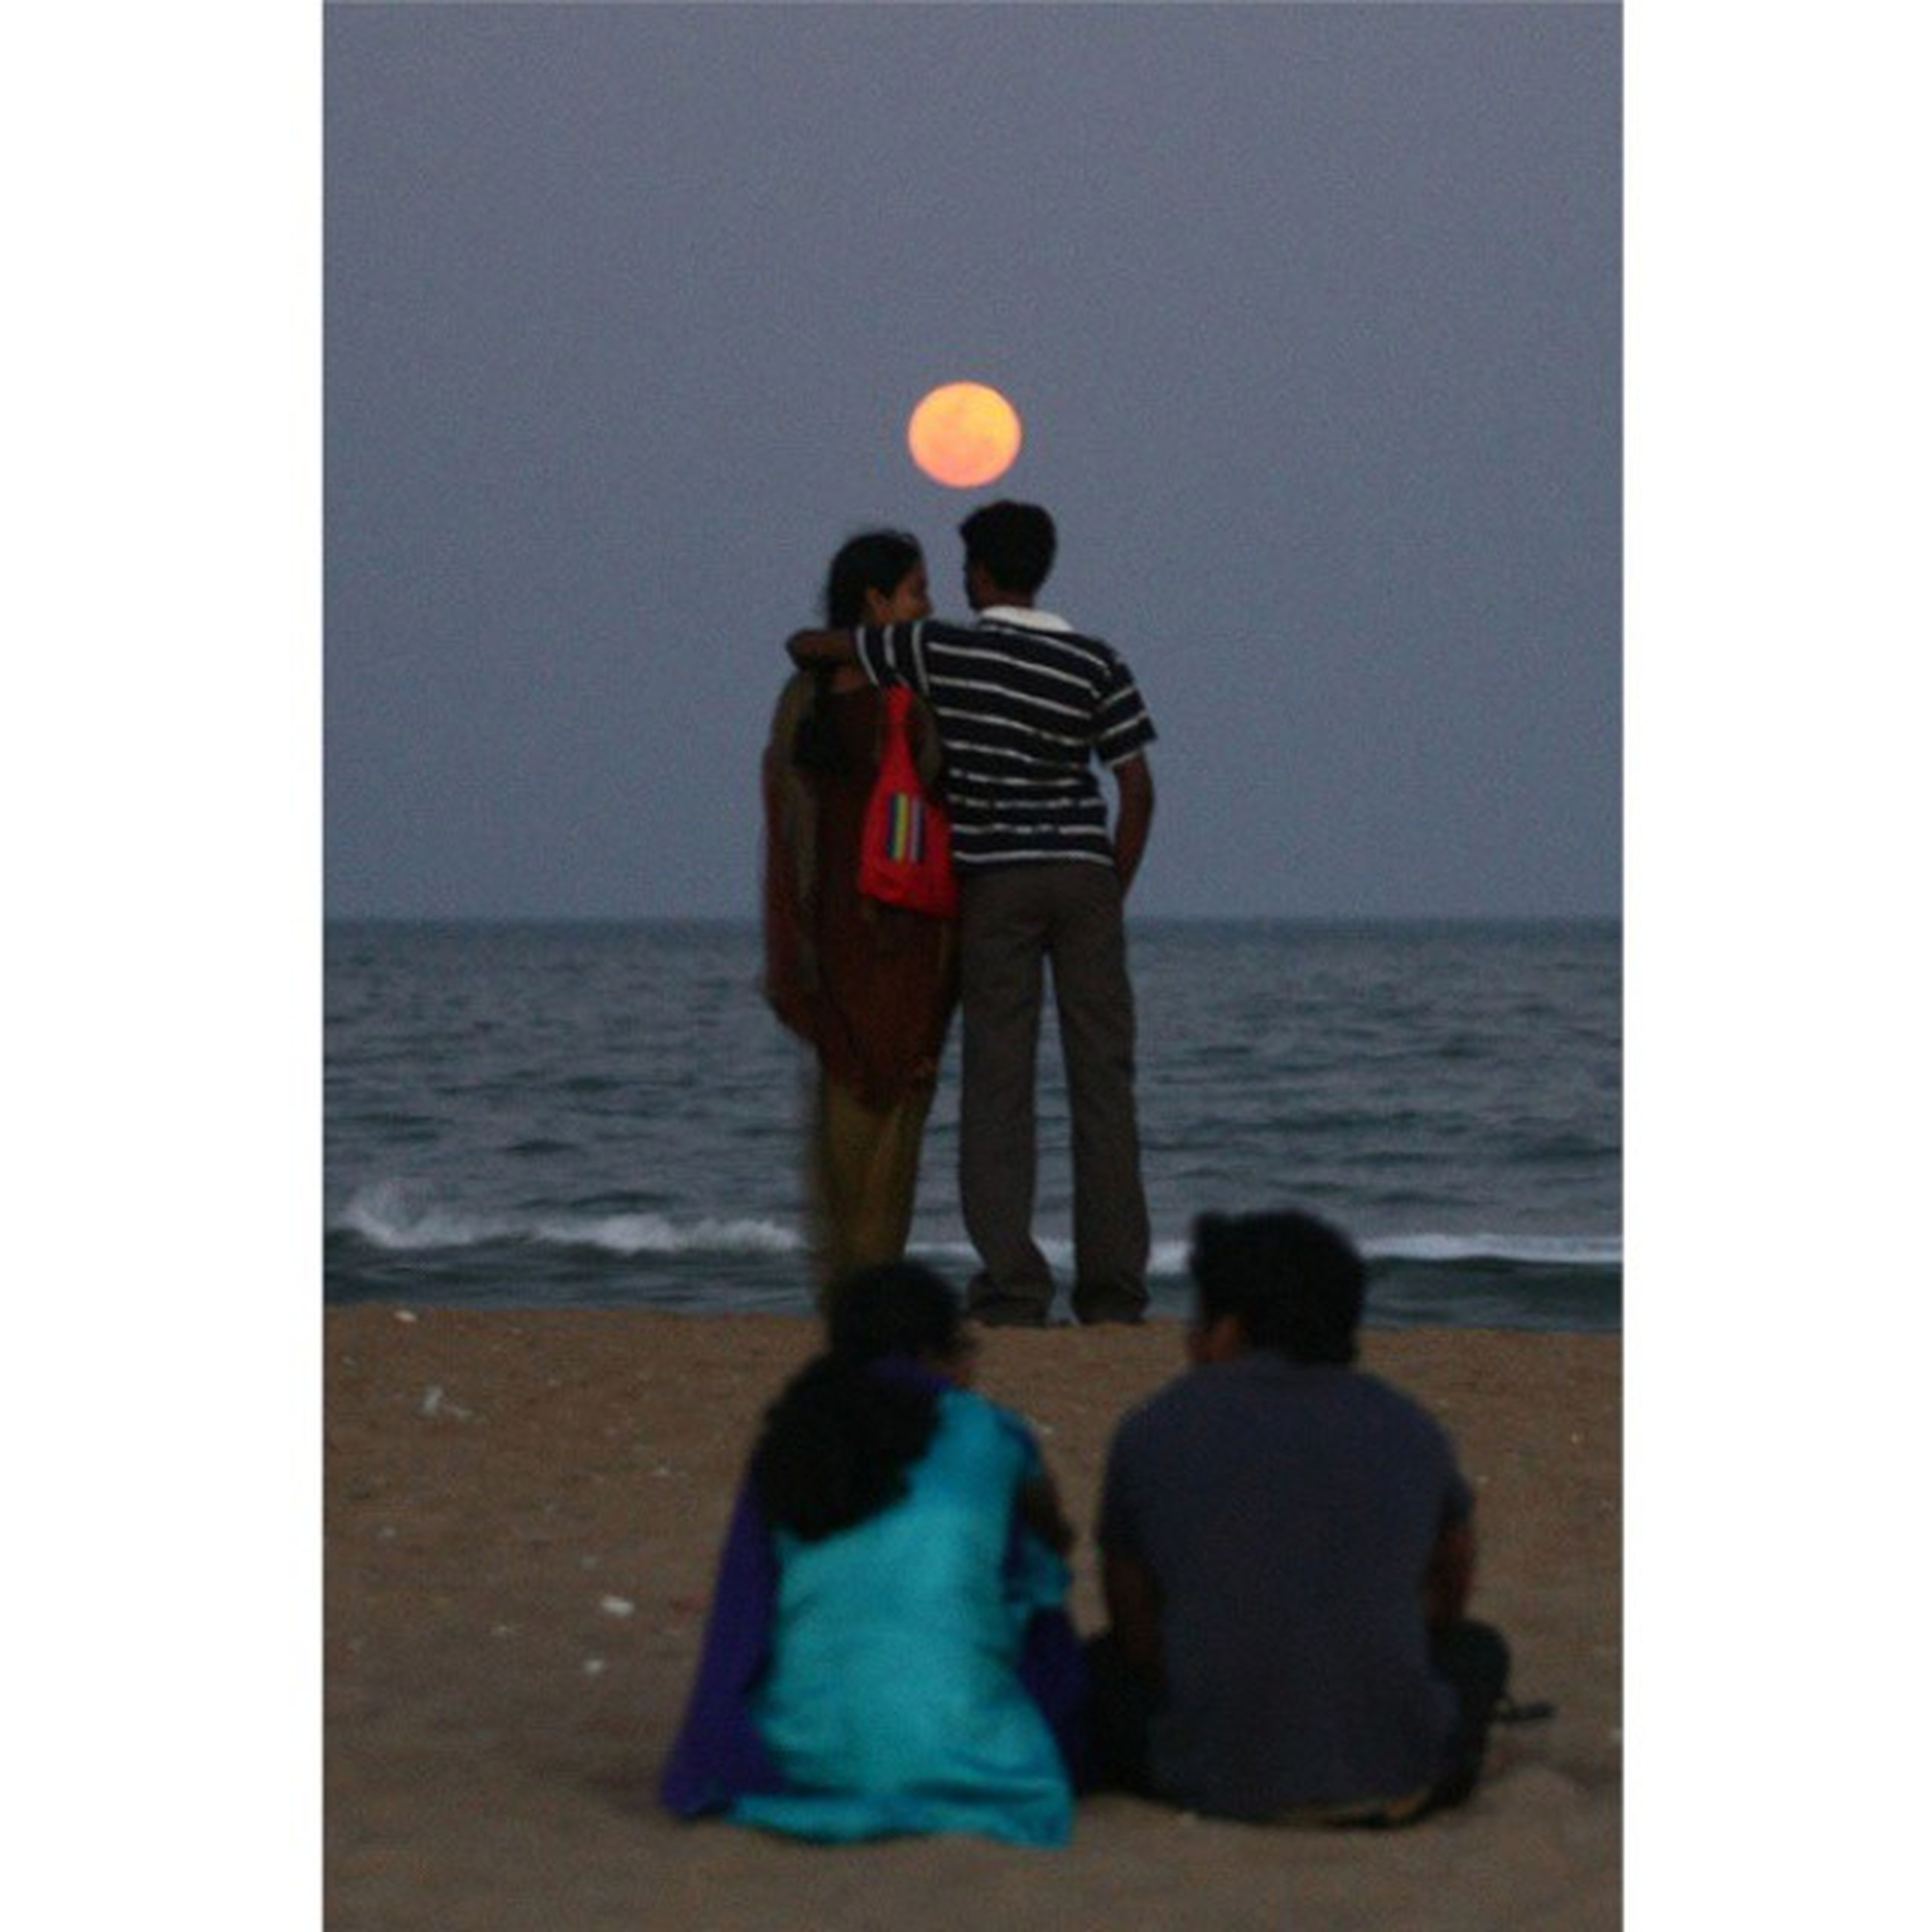 sea, rear view, lifestyles, horizon over water, leisure activity, water, full length, togetherness, transfer print, men, bonding, standing, love, person, auto post production filter, casual clothing, clear sky, beach